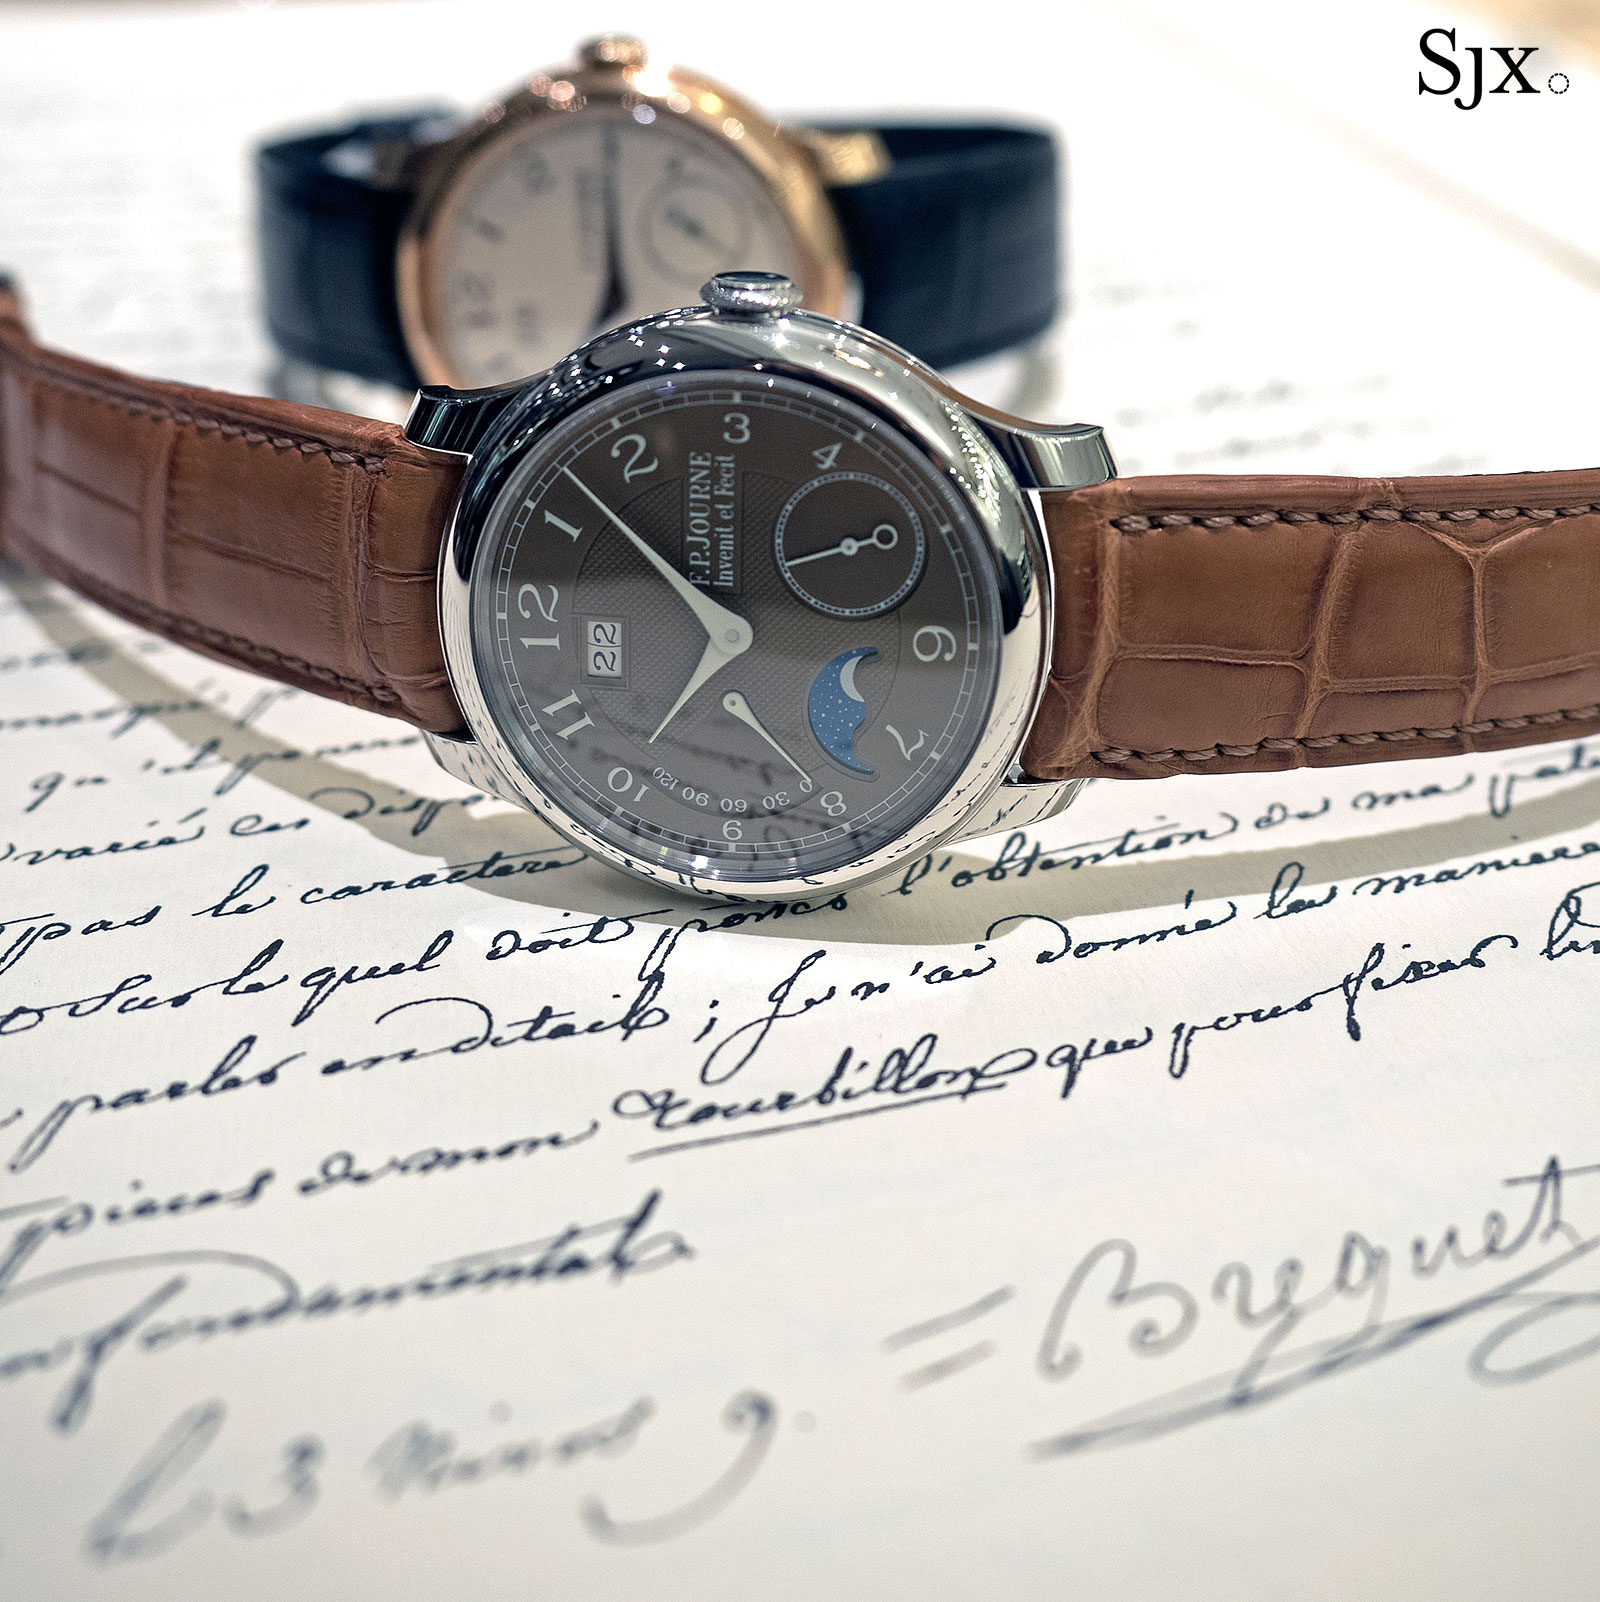 FP Journe Octa Automatique Lune Havana 1